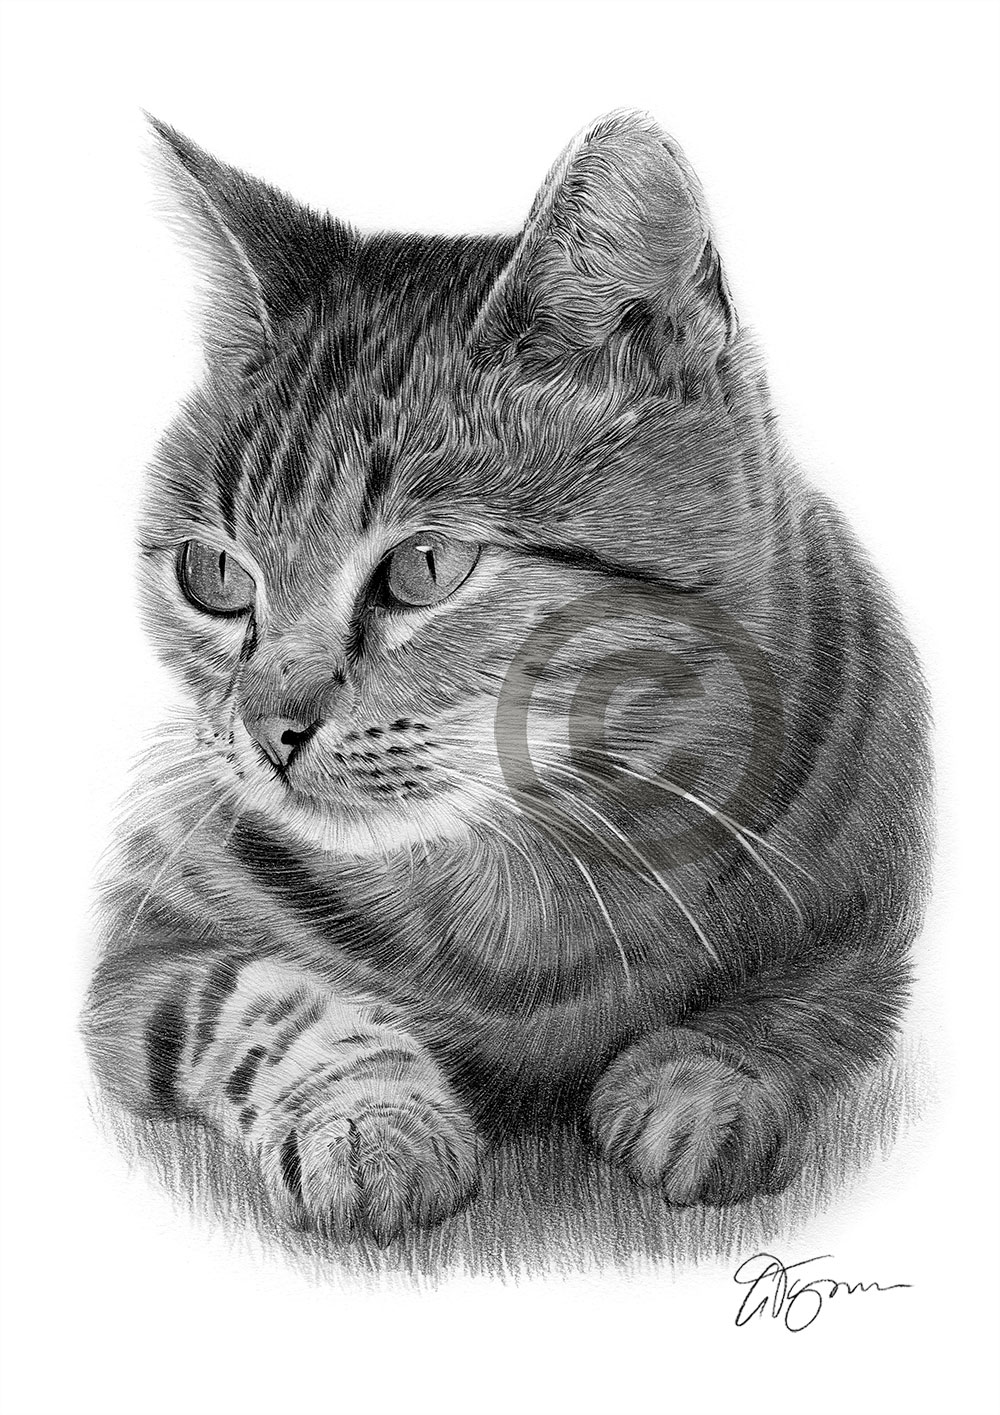 Cat pencil drawing by artist Gary Tymon